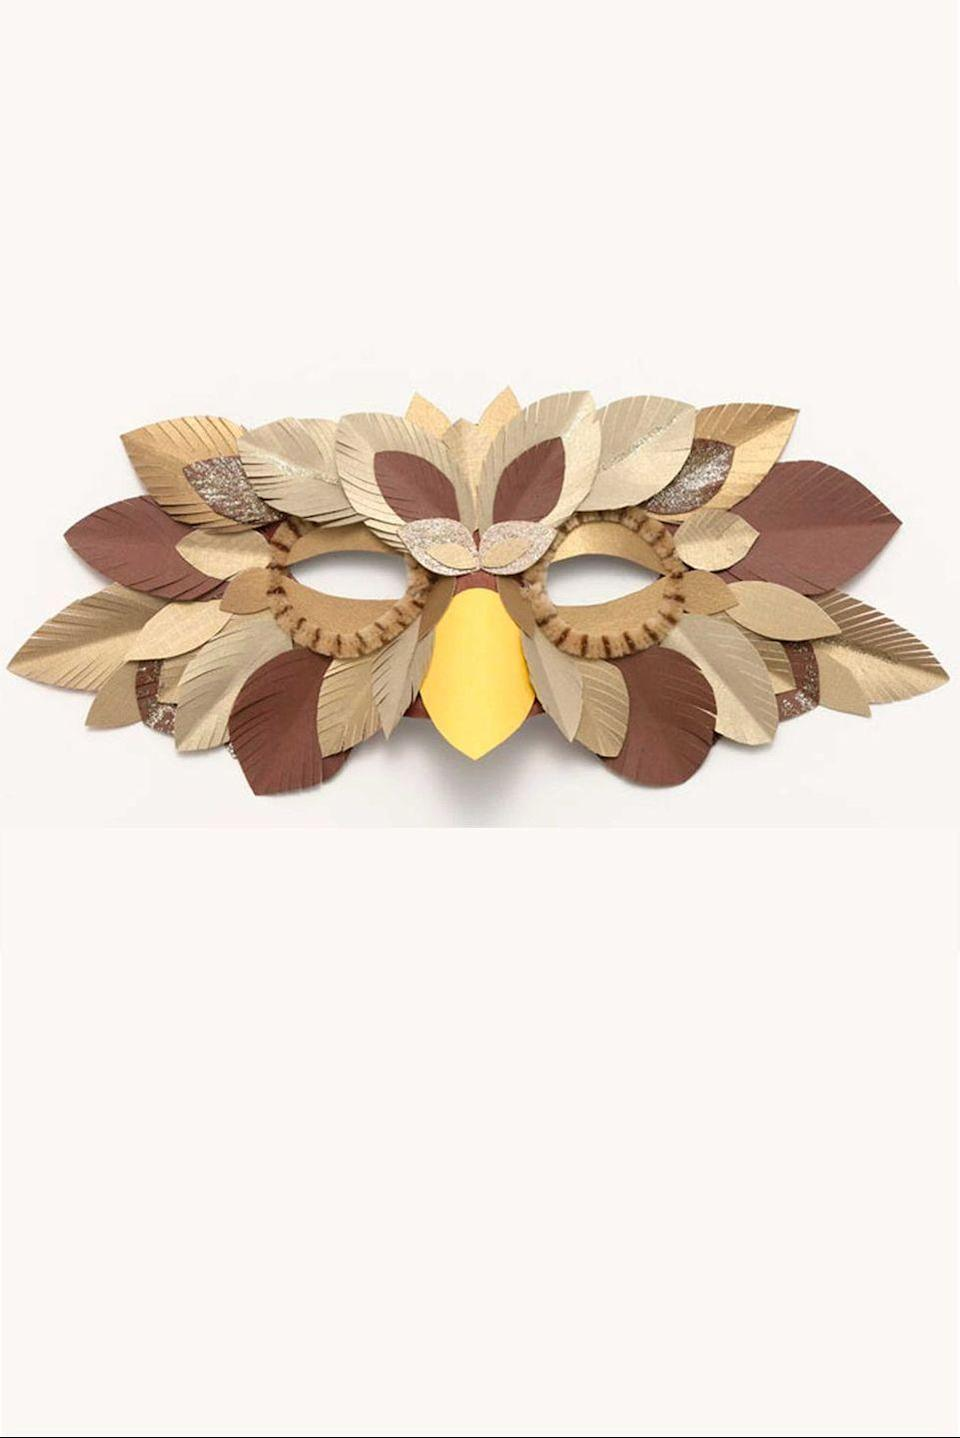 <p>Brown construction paper feathers, gold glitter, acrylic paint, and brown and gold chenille stems can help you make the face of a wise old owl.</p>